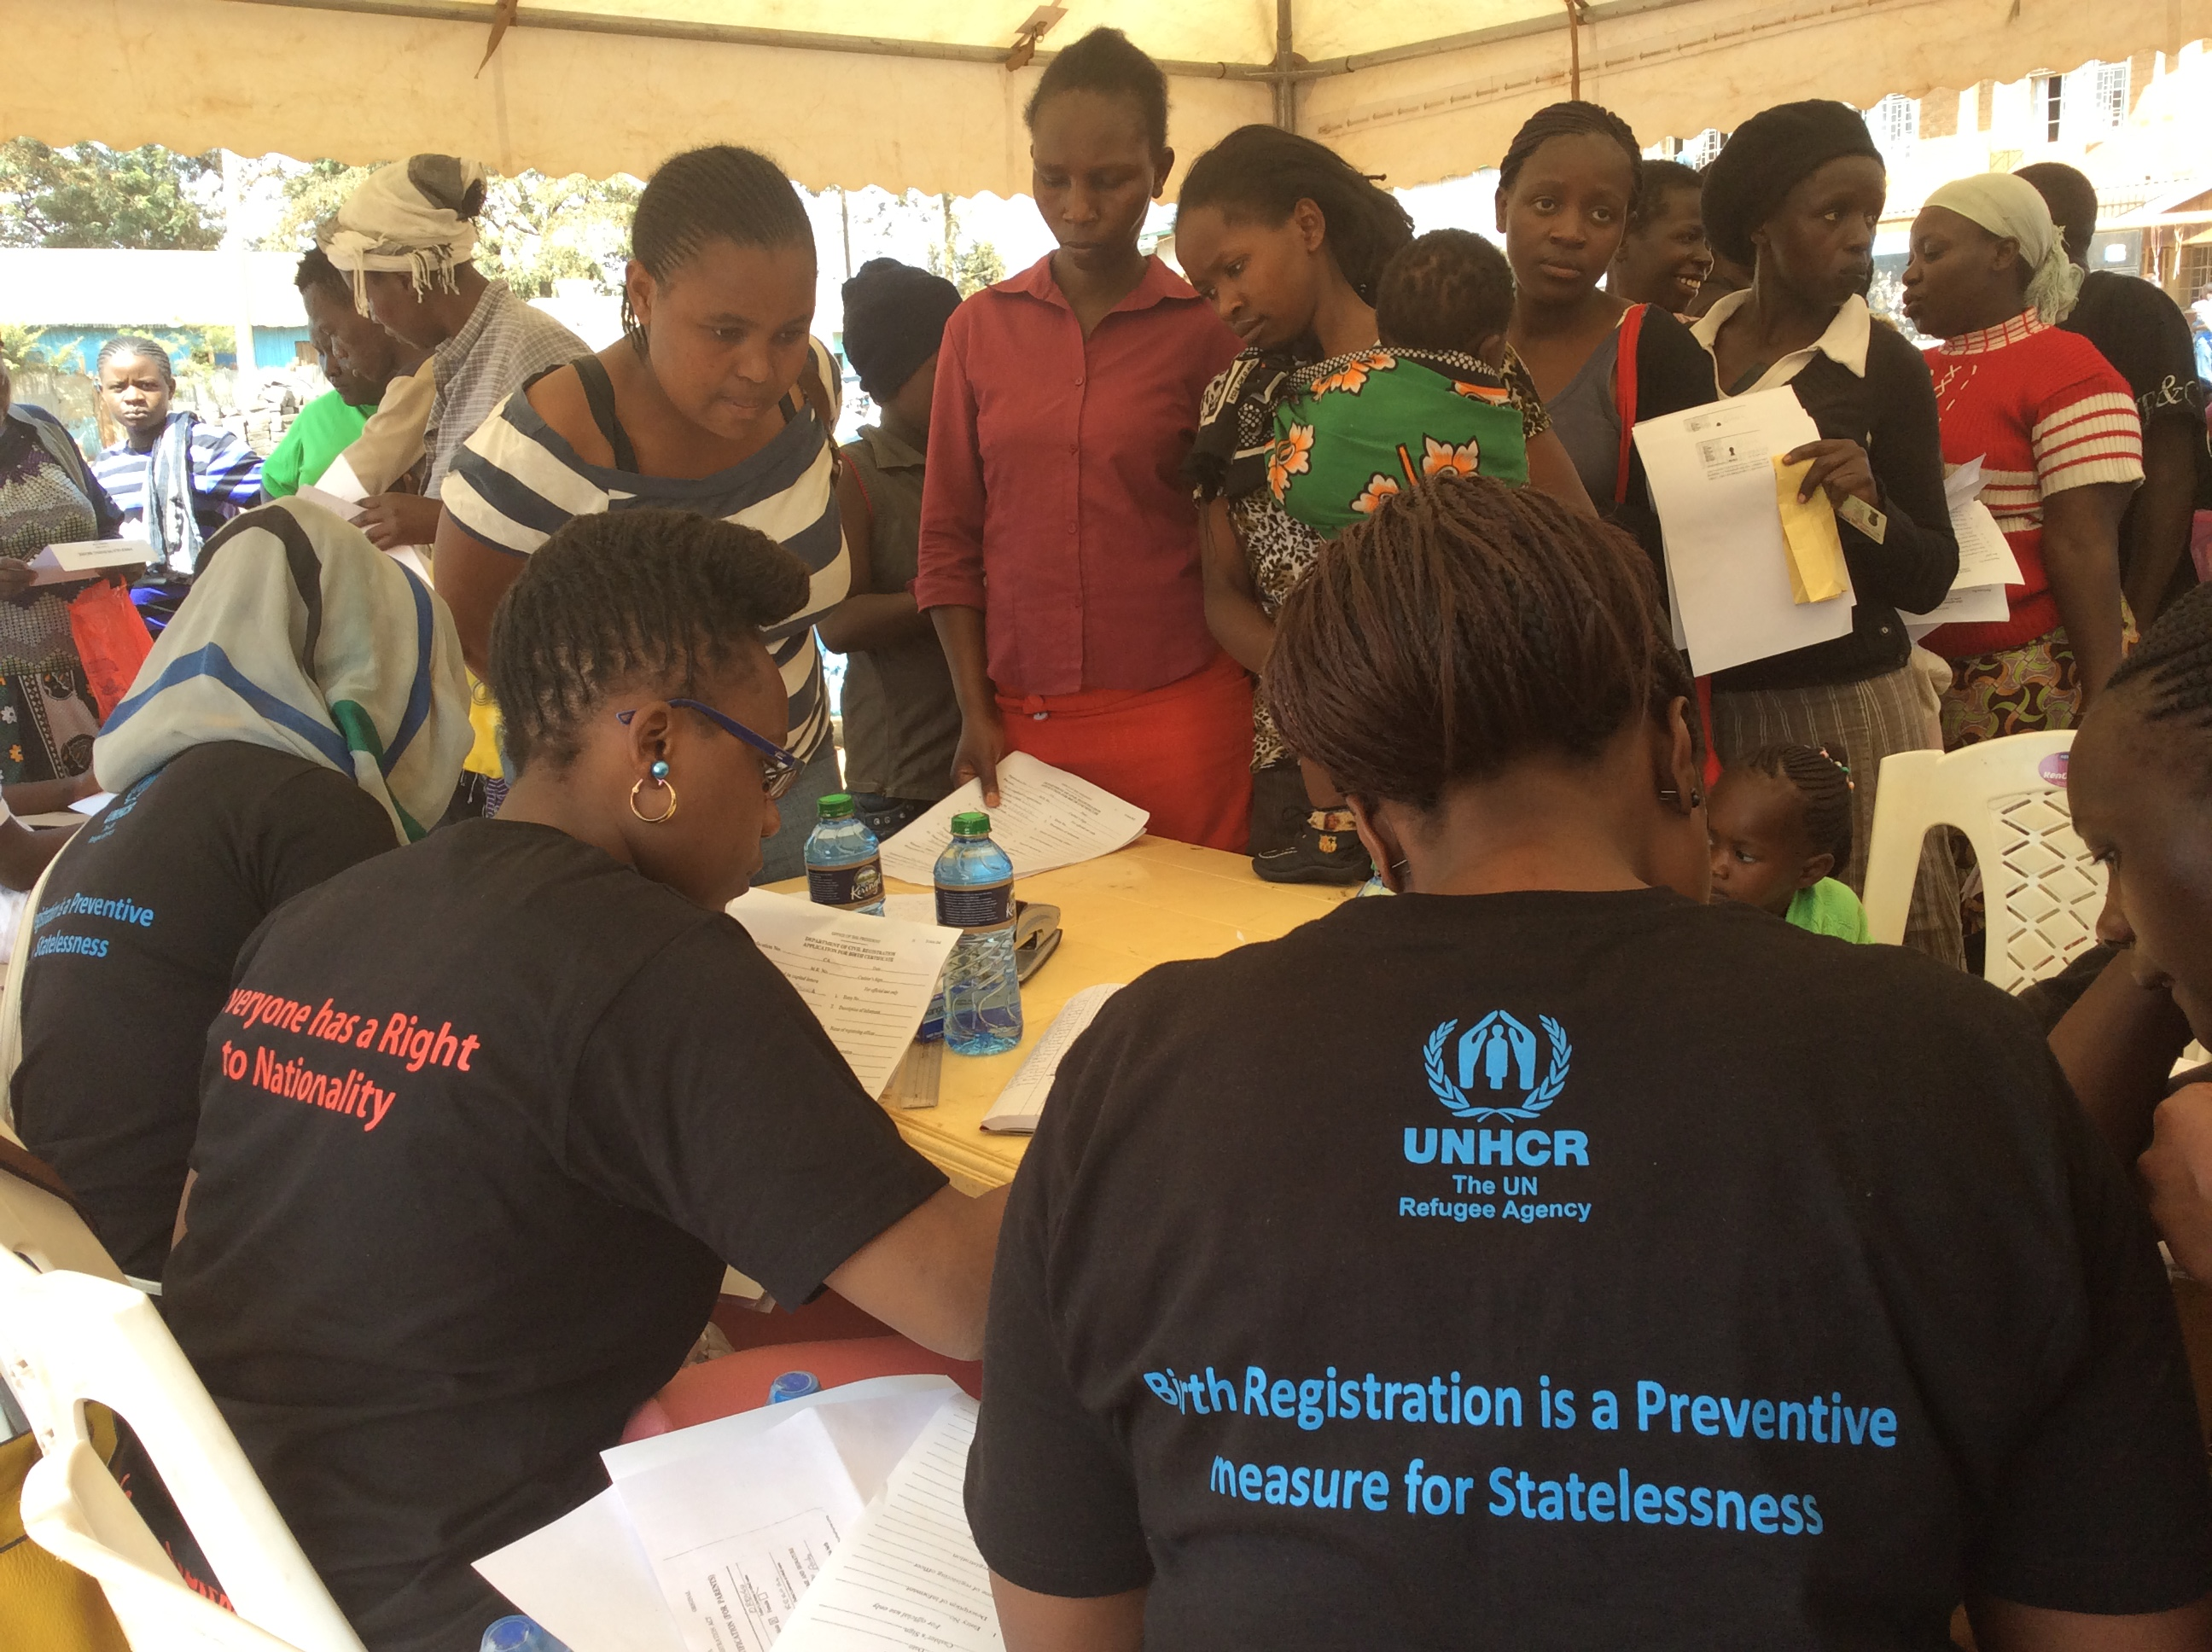 Birth Registration: The First Step in Ending Statelessness